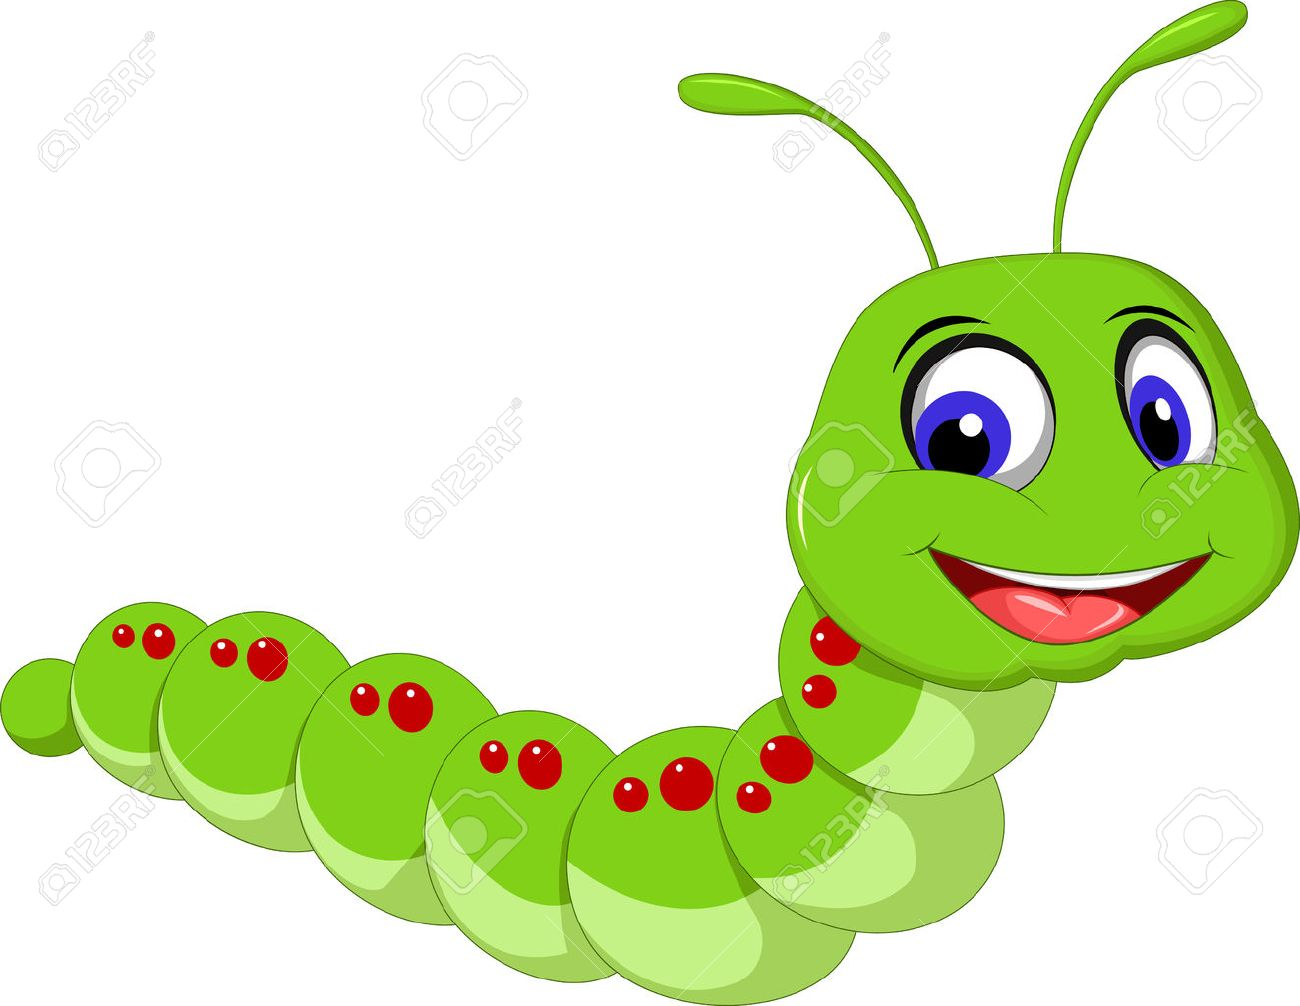 Catepiller clipart vector royalty free download Cute caterpillar clipart 5 » Clipart Station vector royalty free download